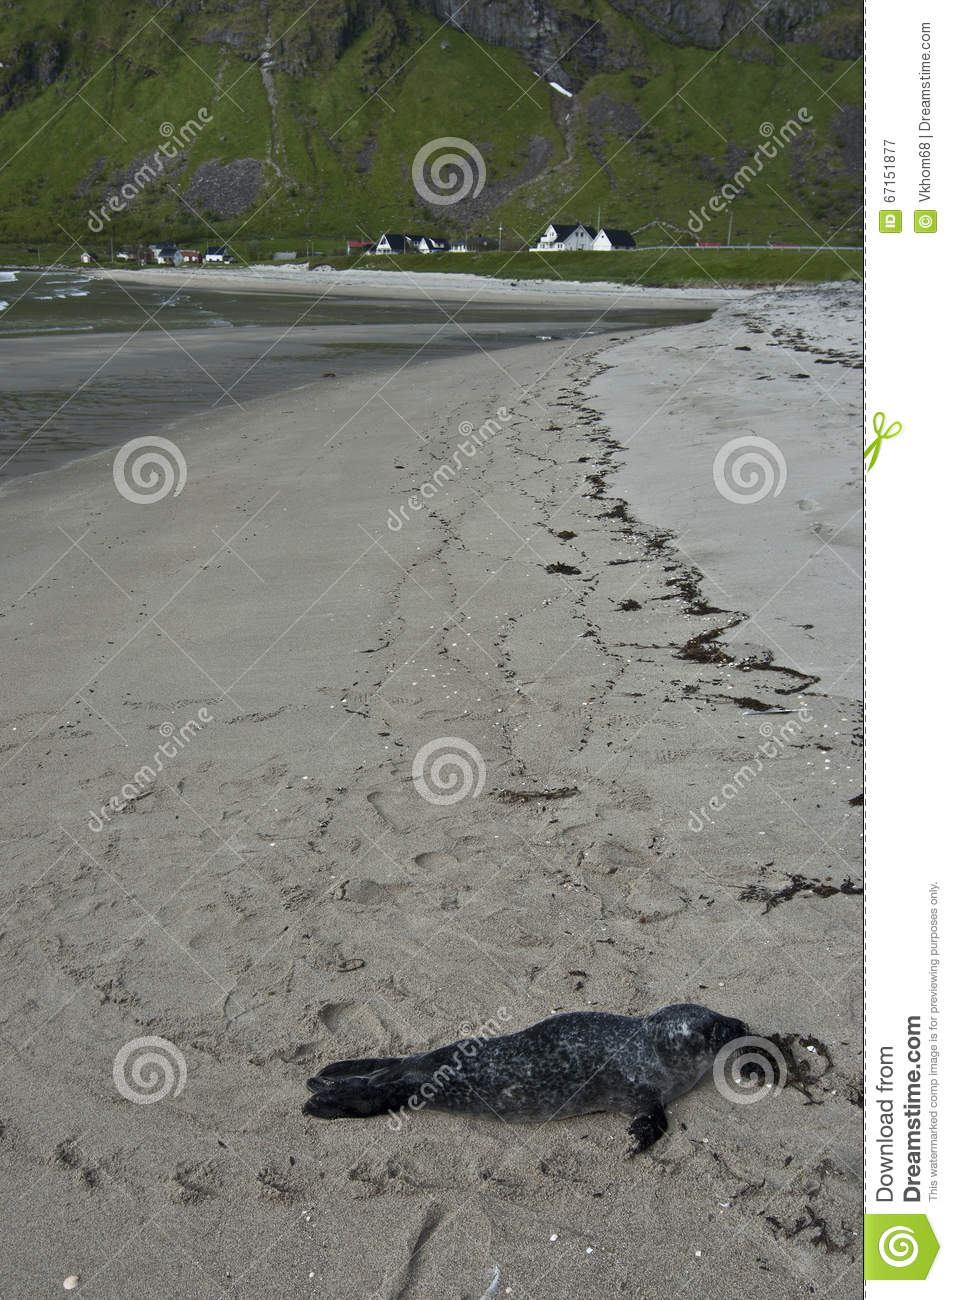 The Fur Seal On The Beach In Norway Stock Image - Image of